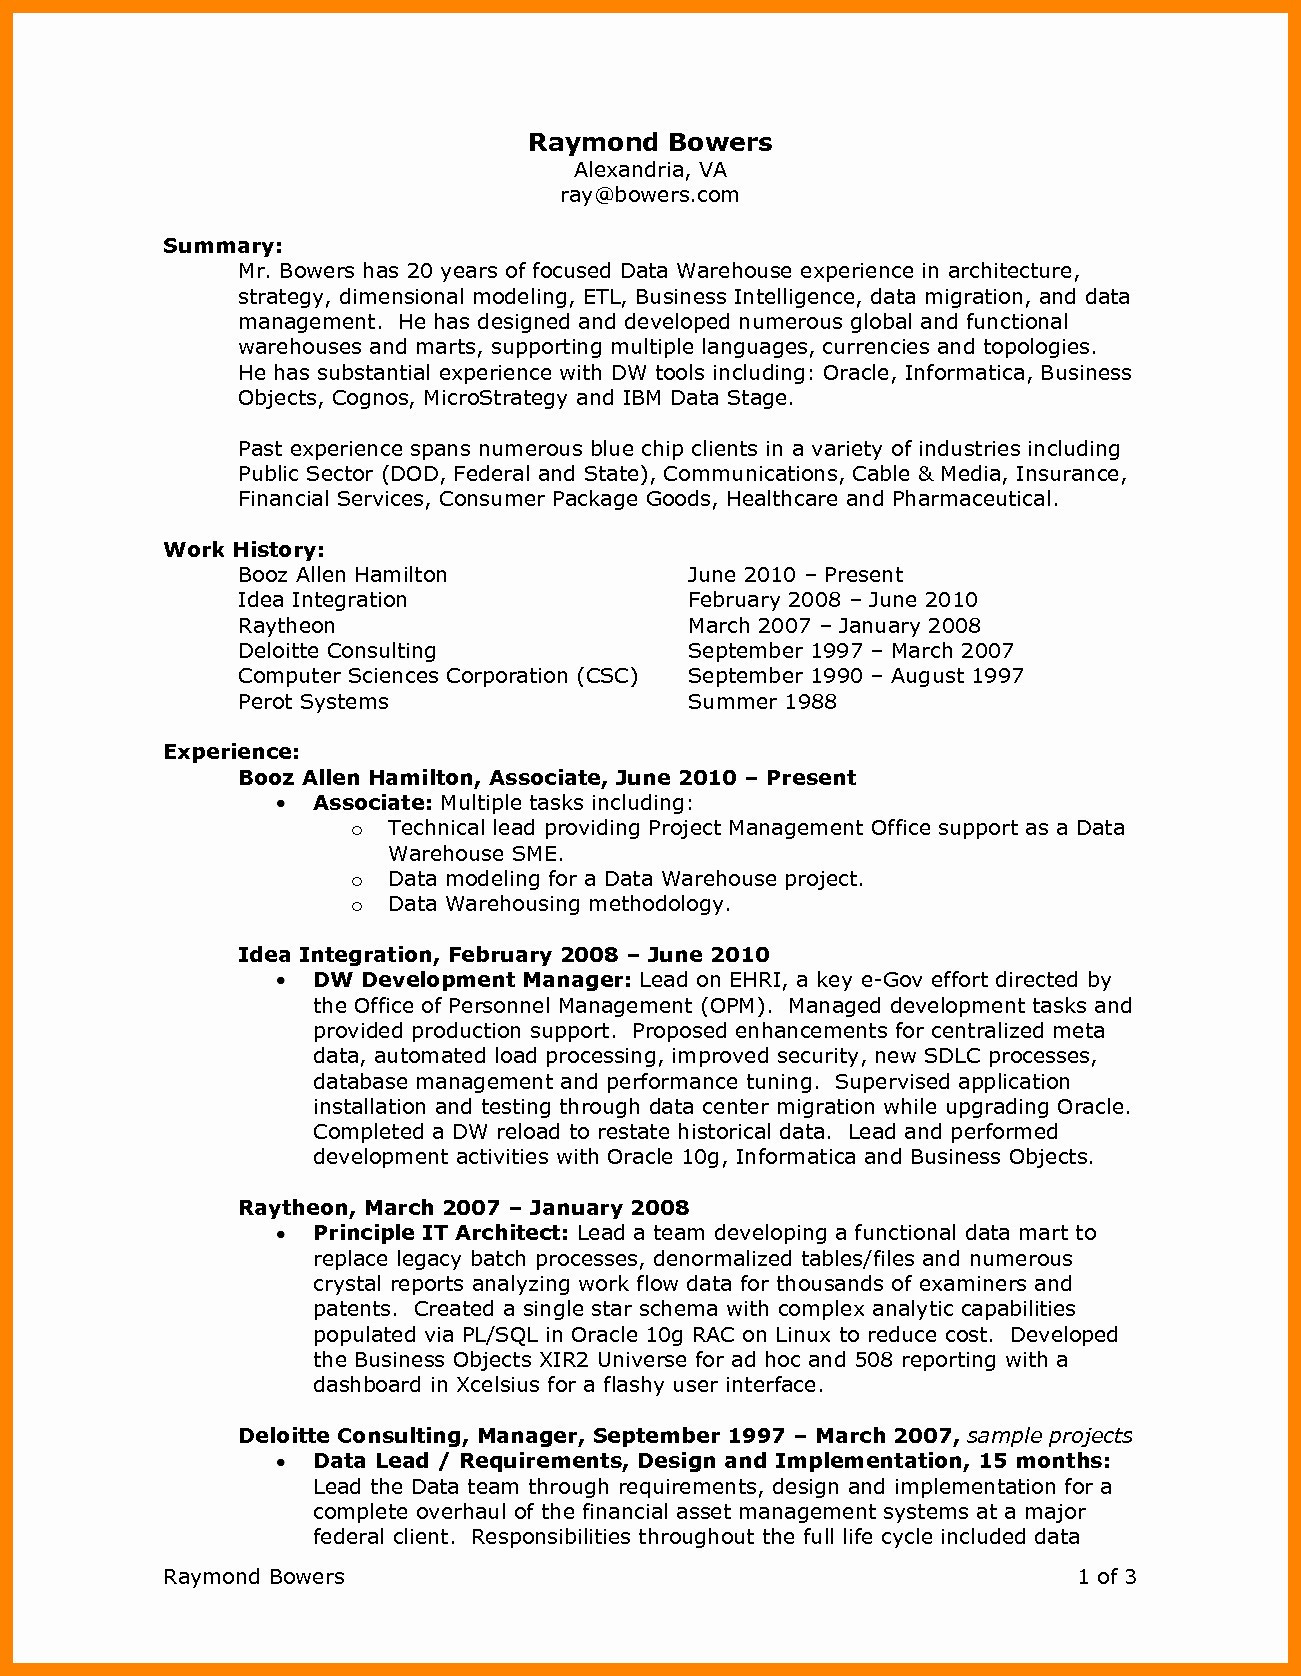 Service Industry Resume Template - Resume for Internal Promotion Template Free Downloads Beautiful